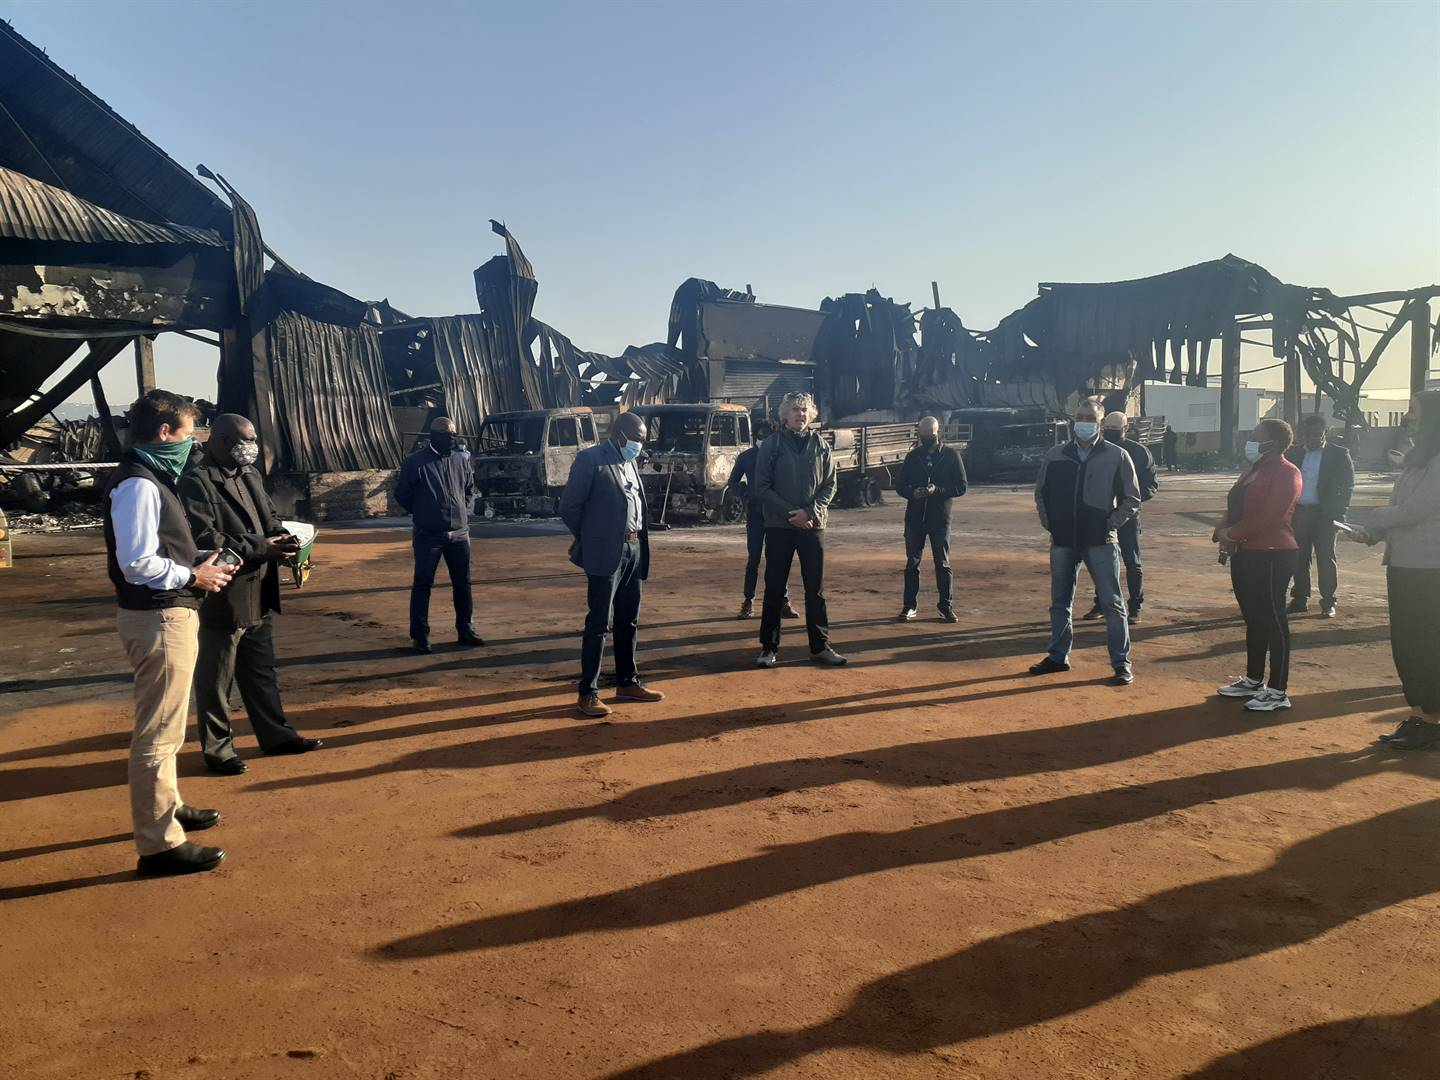 eThekwini Municipality Mayor, Mxolisi Kaunda, meeting with business owners of the Cornubia Industrial and Business Estate where 16 warehouses were looted.